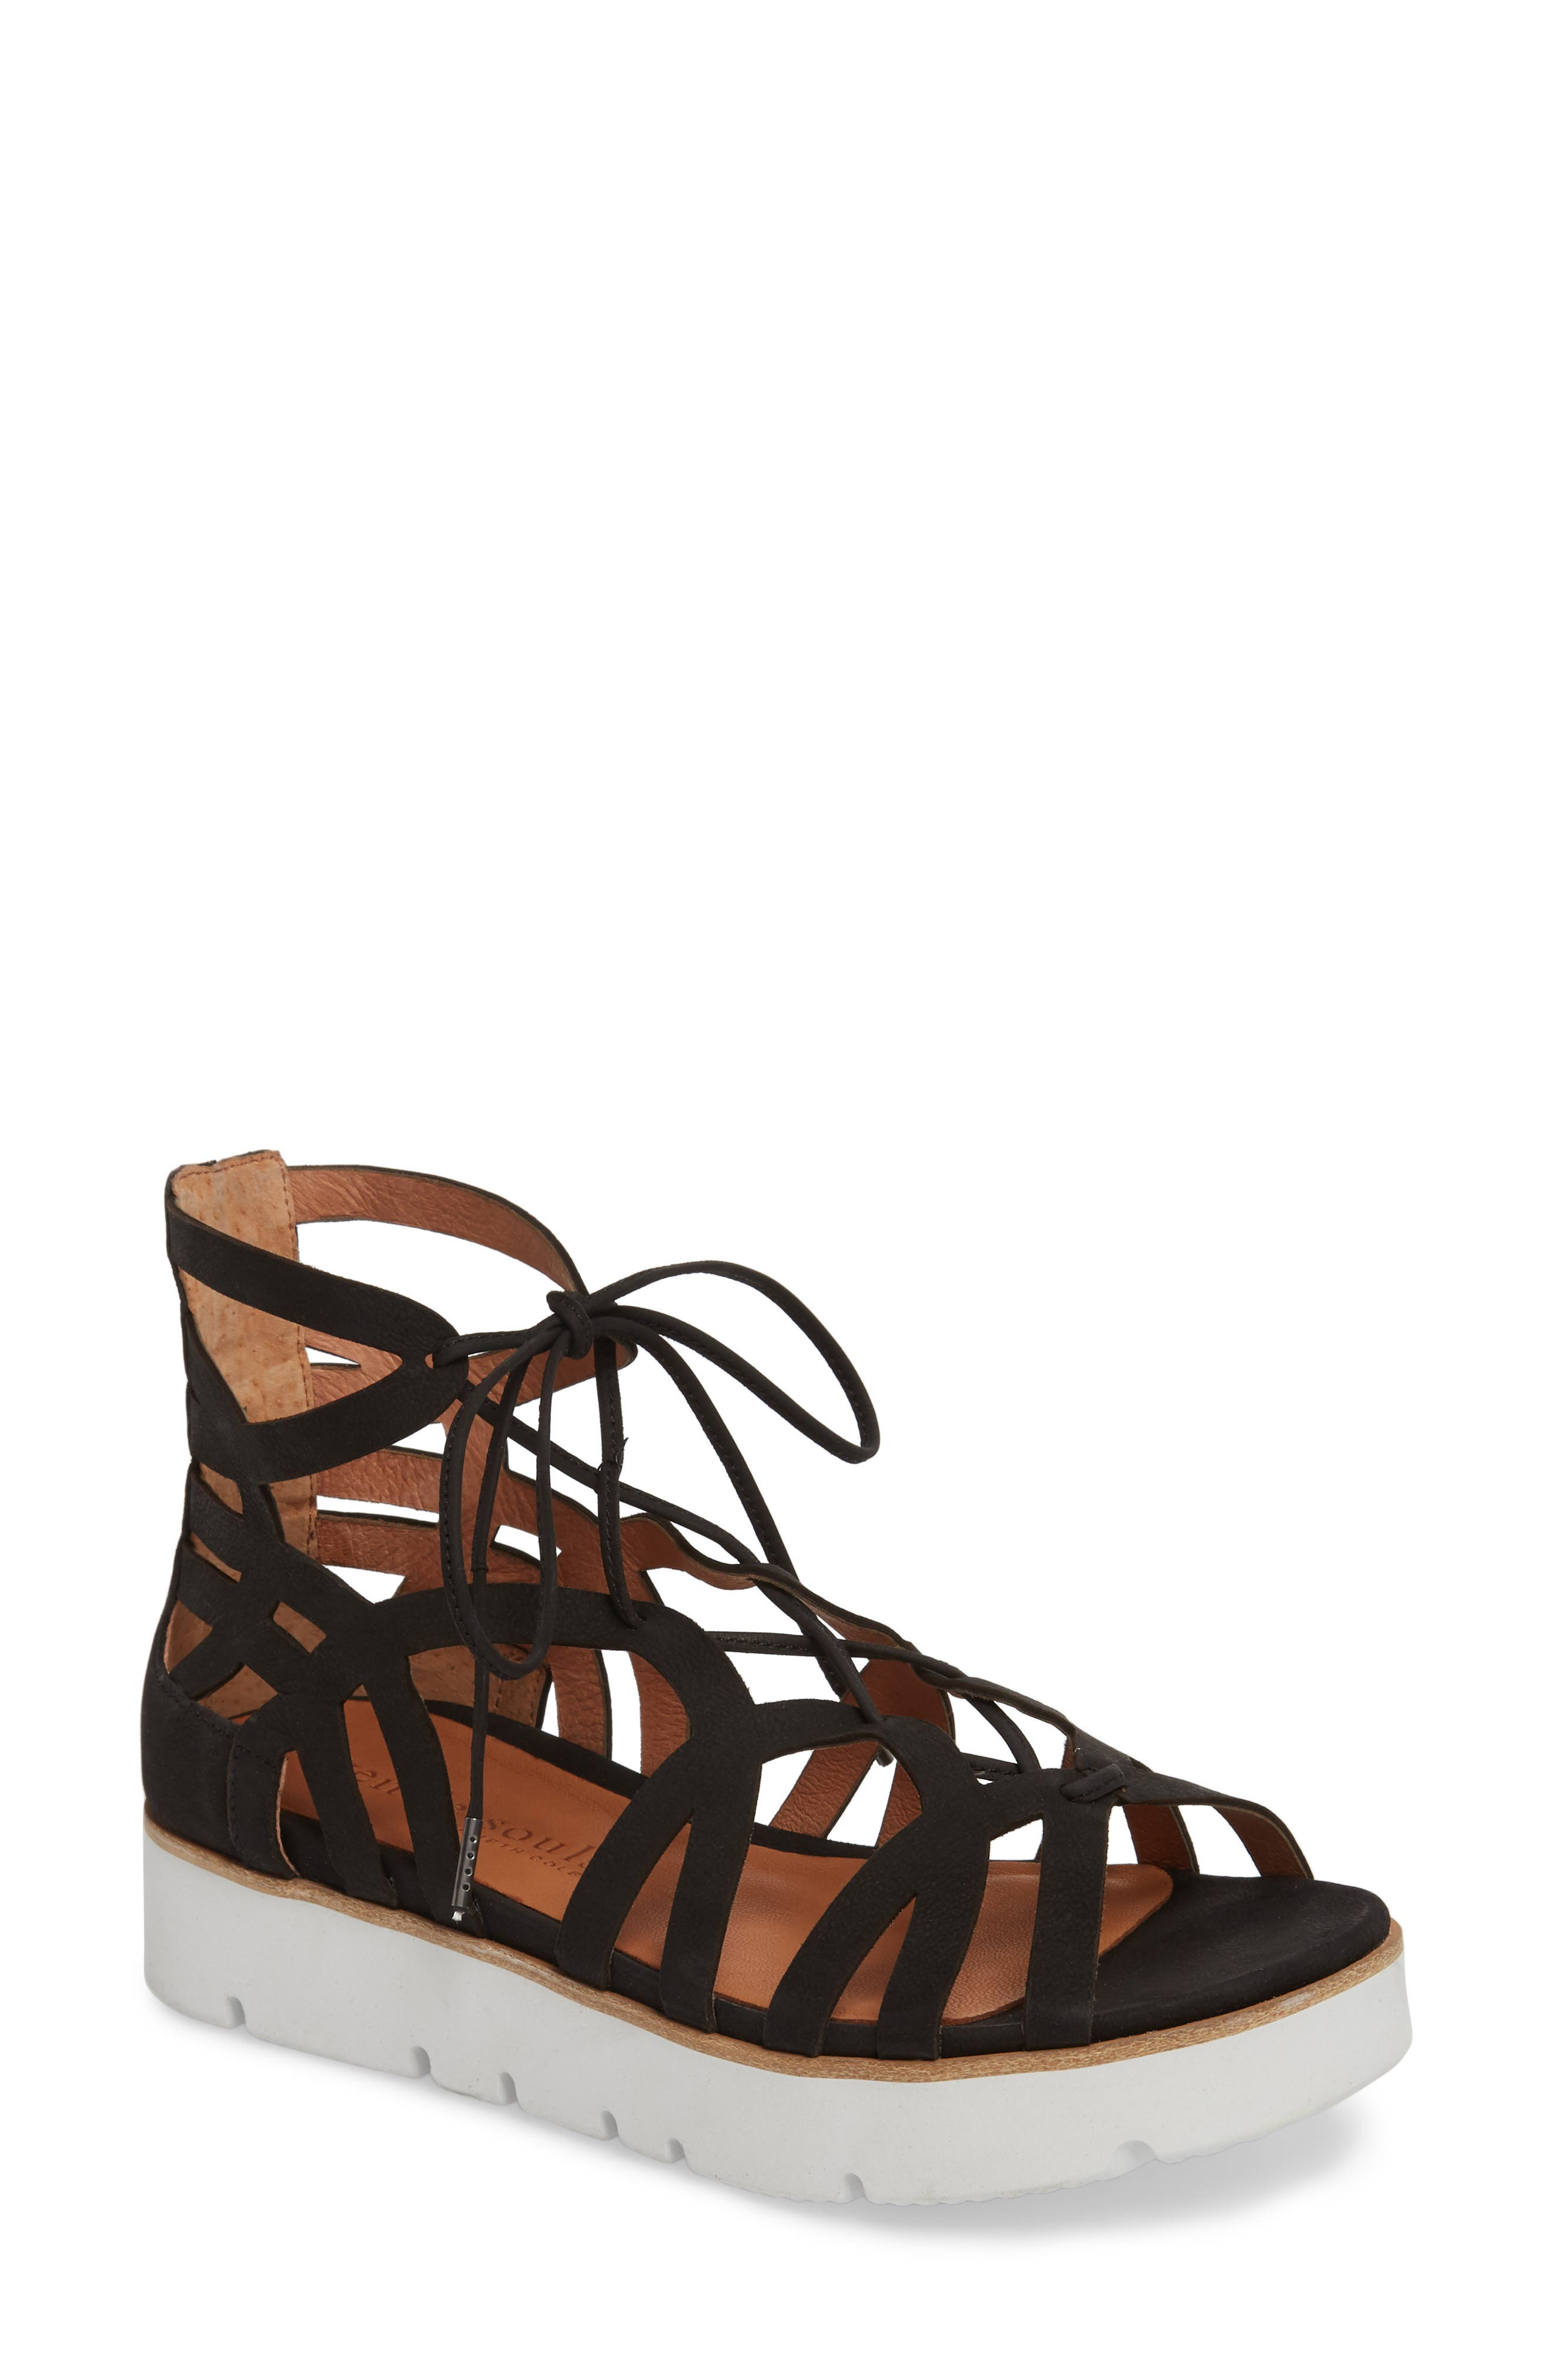 GENTLE SOULS BY KENNETH COLE Larina Lace-Up Sandal, Main, color, BLACK NUBUCK